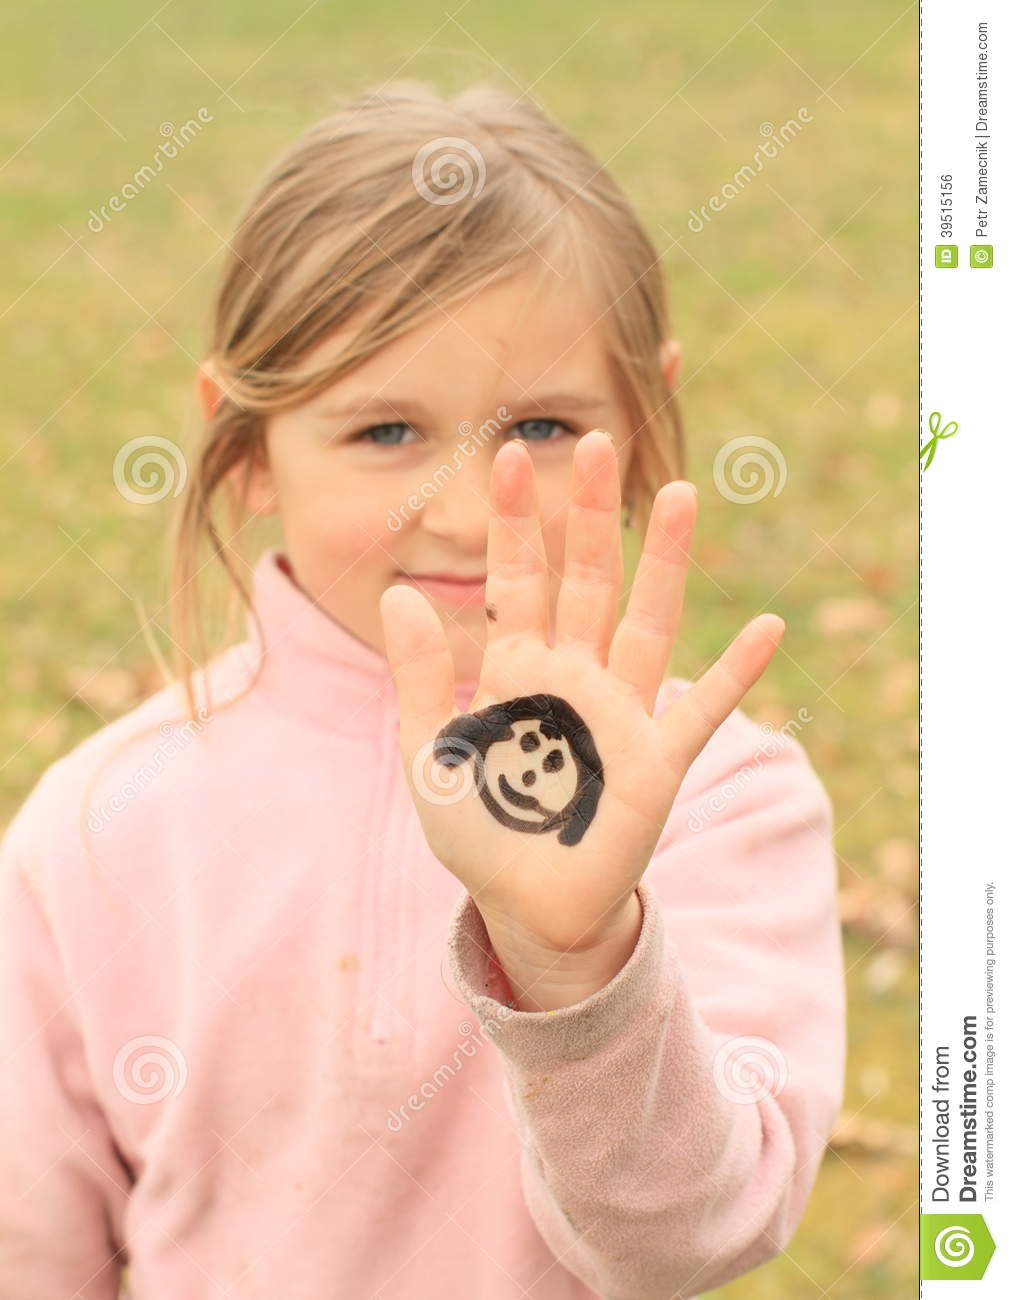 Girl with drawings on hand